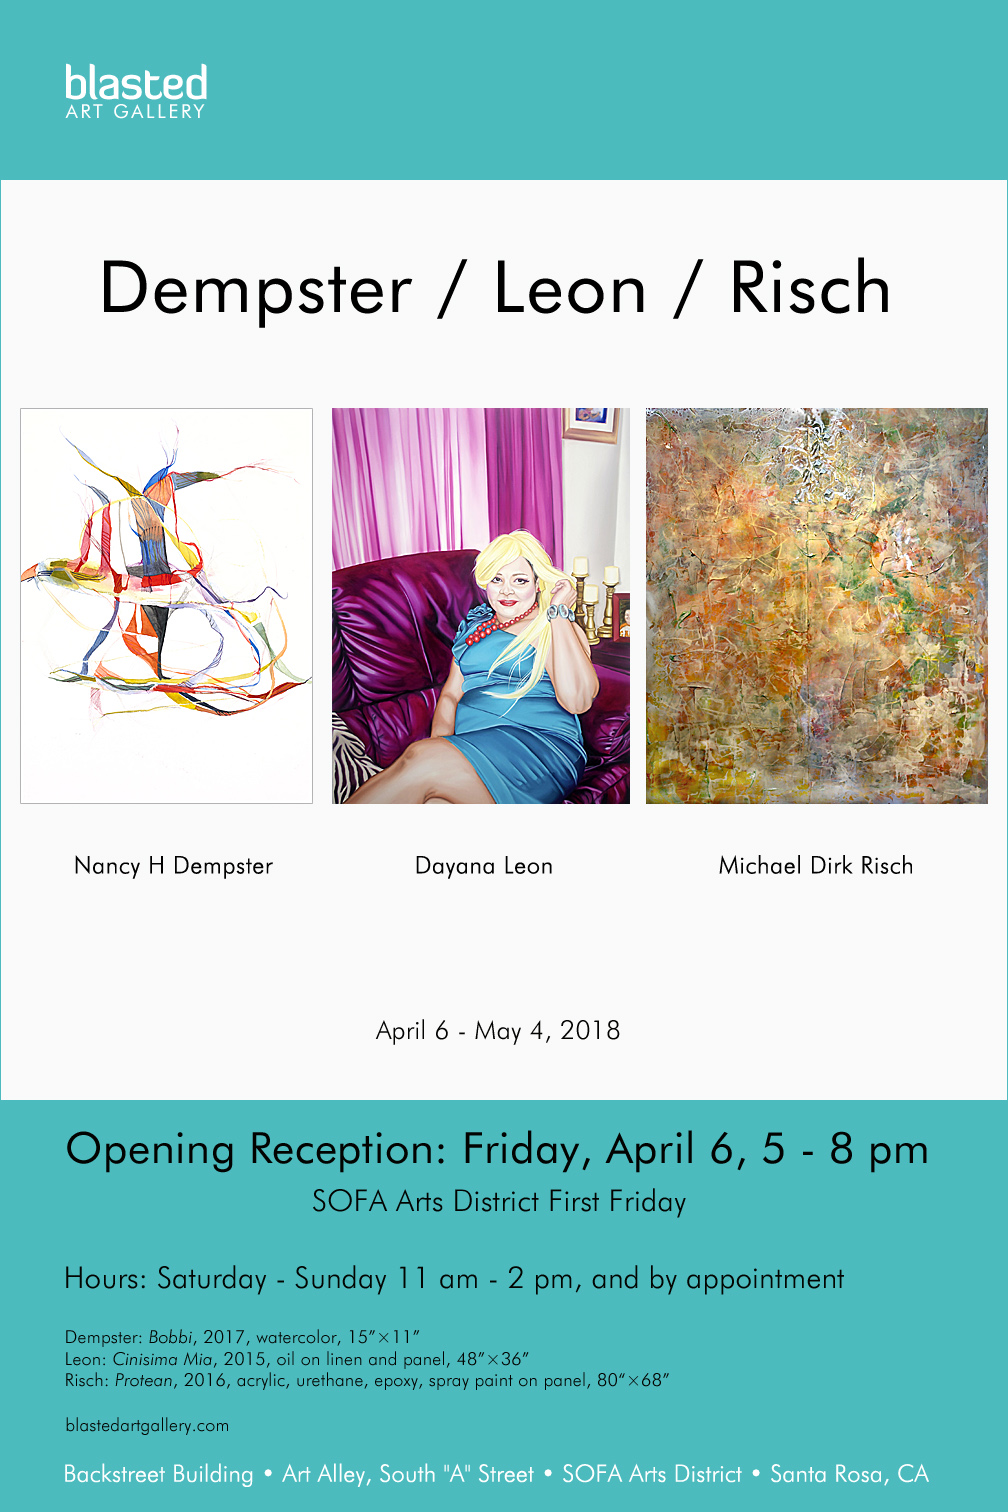 blasted-art-gallery_dempster-leon-risch-OPENING-invittation_02_PROOF_02.jpg